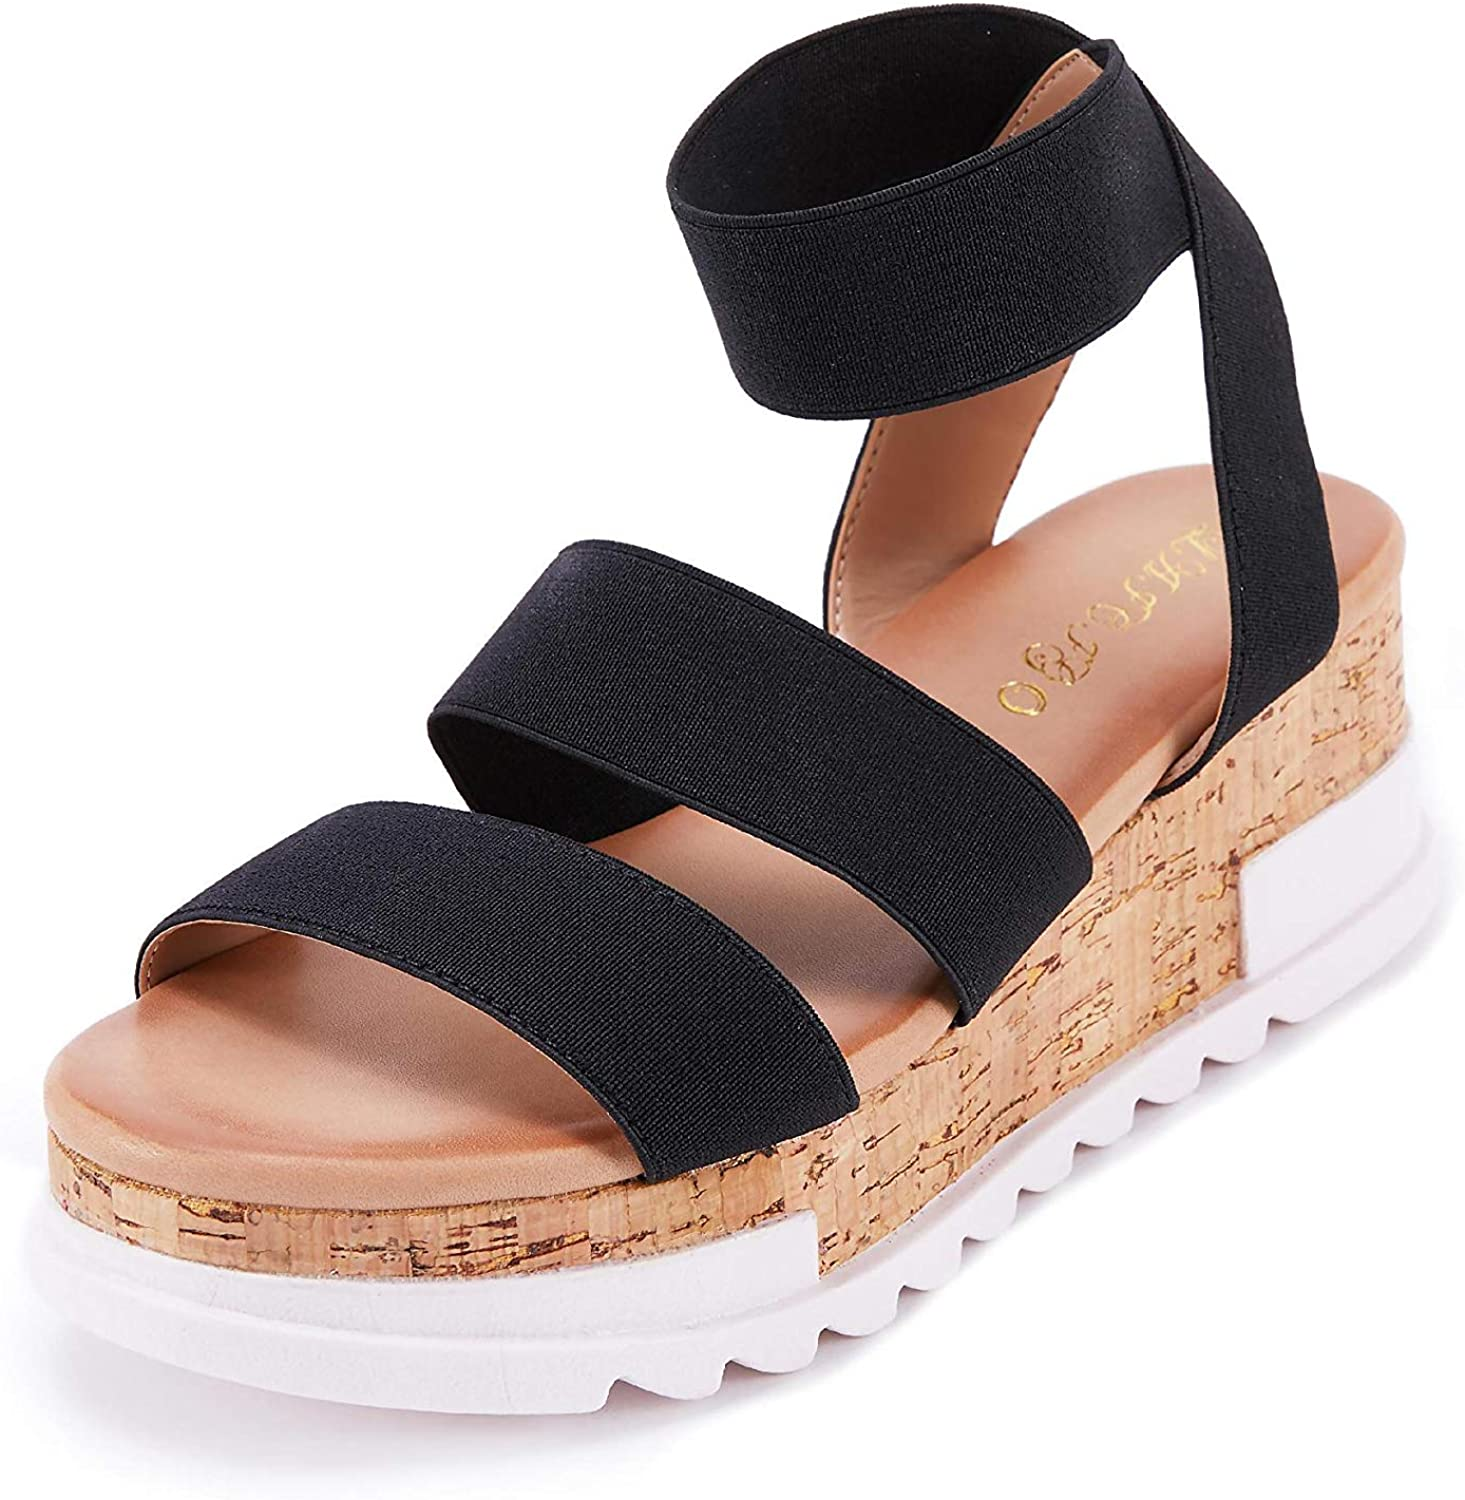 Women's Colorado Springs Mall Wedge Sandals Platform Elastic Open To lowest price Ankle Straps